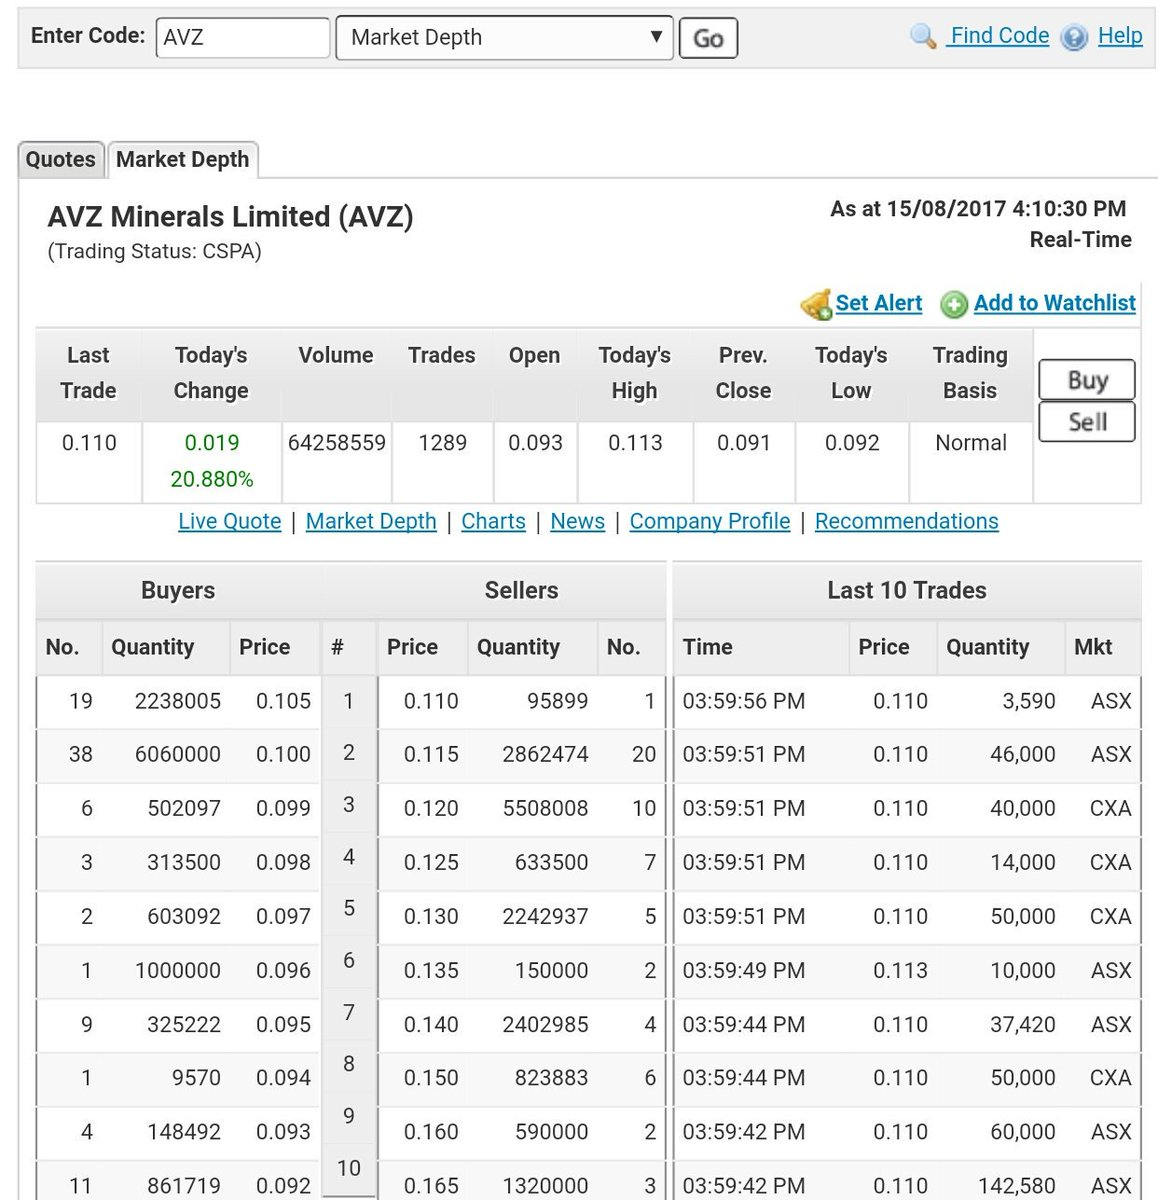 $AVZ Minerals: $Airguide in #China. Volume supports much higher prices. Globally #strategic, largest #lithium #asset, well known in China.<br>http://pic.twitter.com/norbLuvFvs